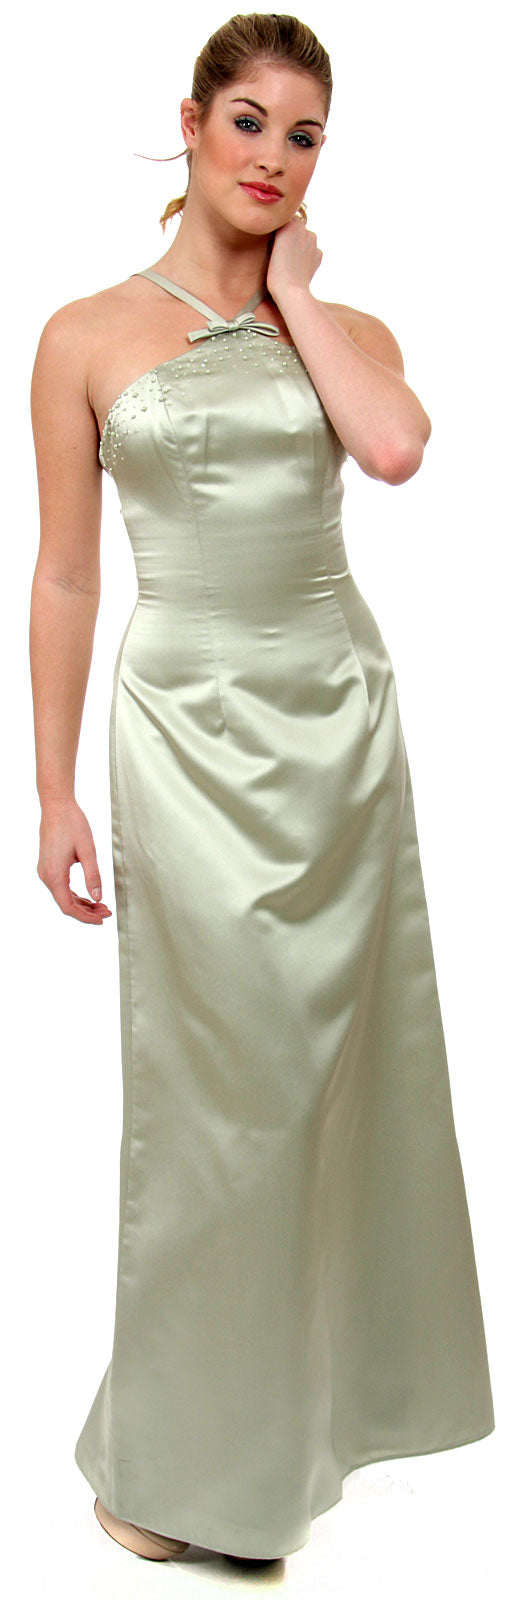 Main image of Crossed Front Beaded Evening Dress